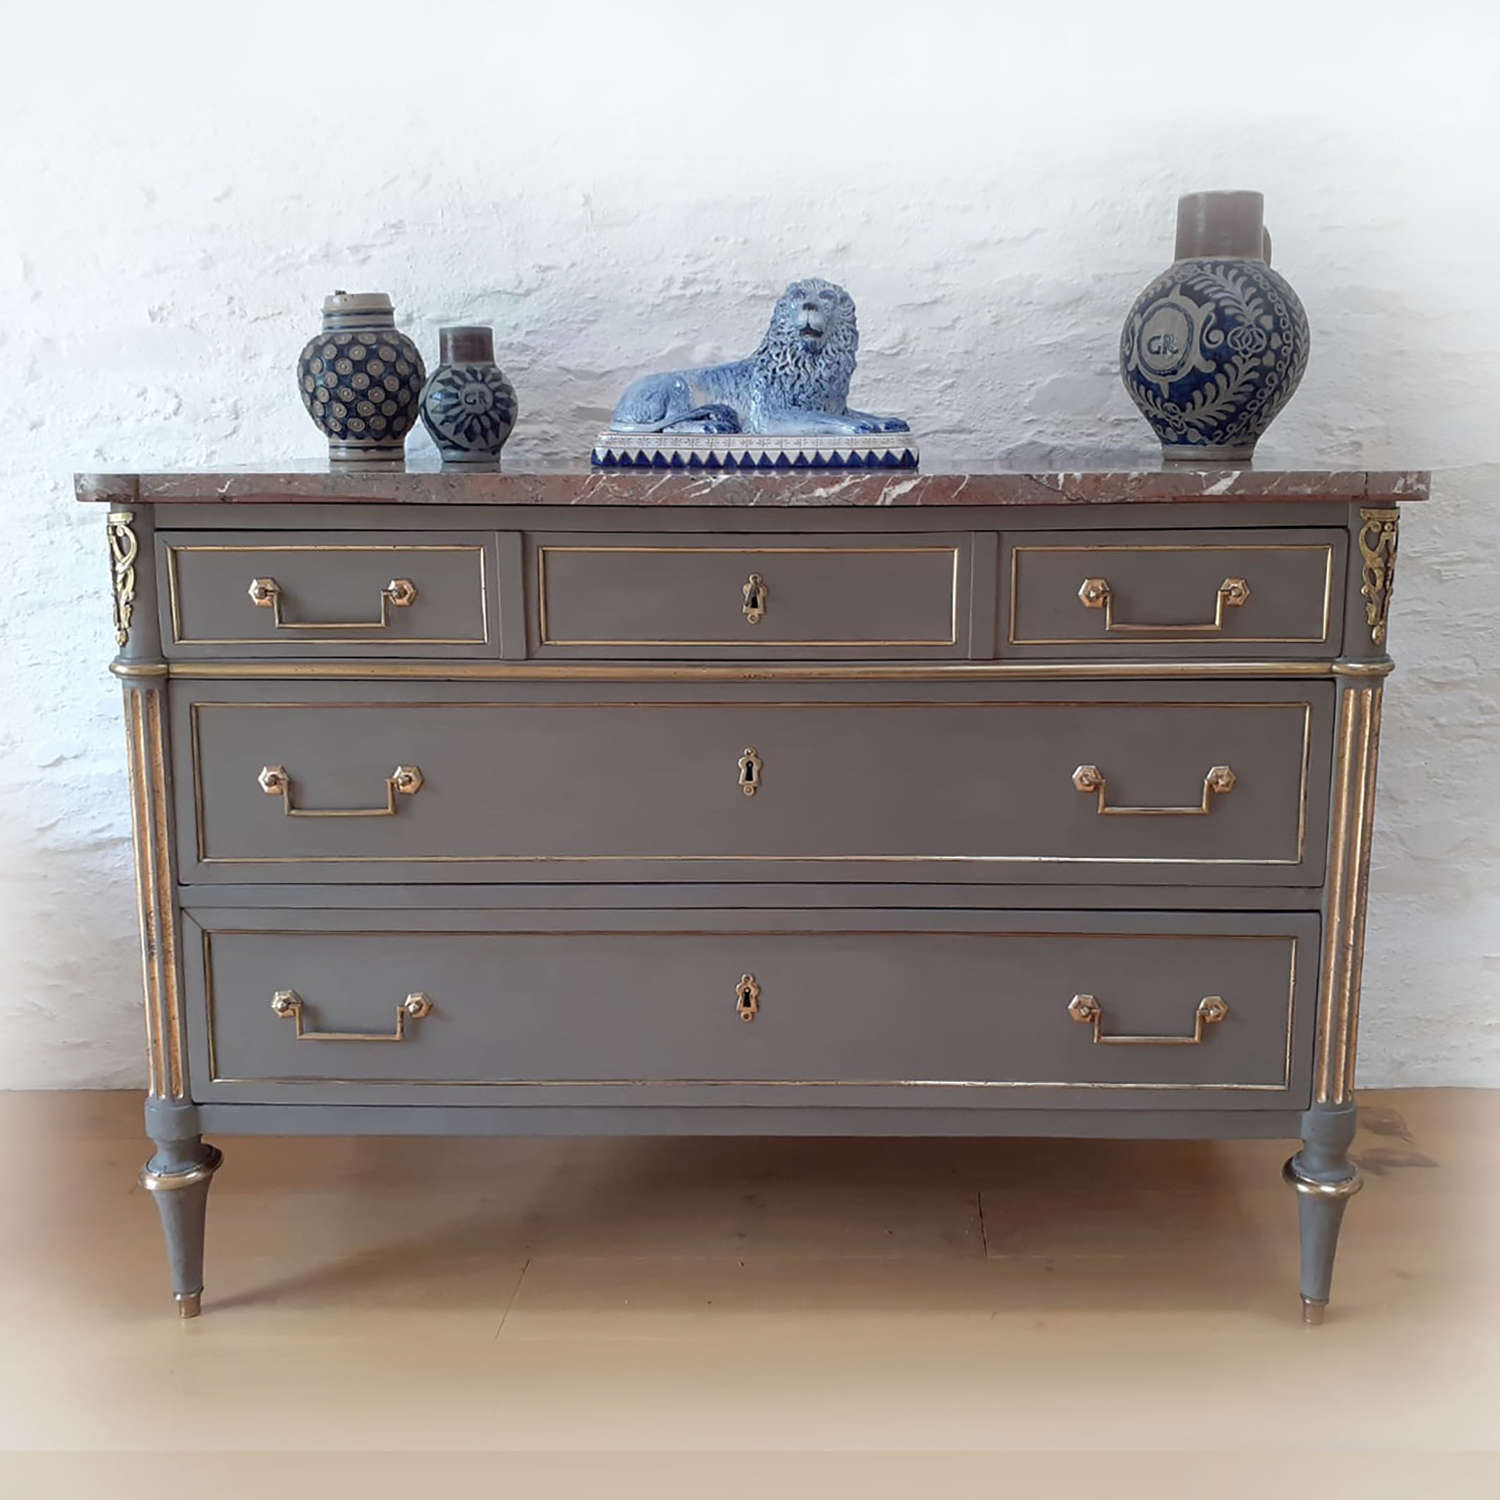 Late 18th/Early 19th Century Directoire marble top commode